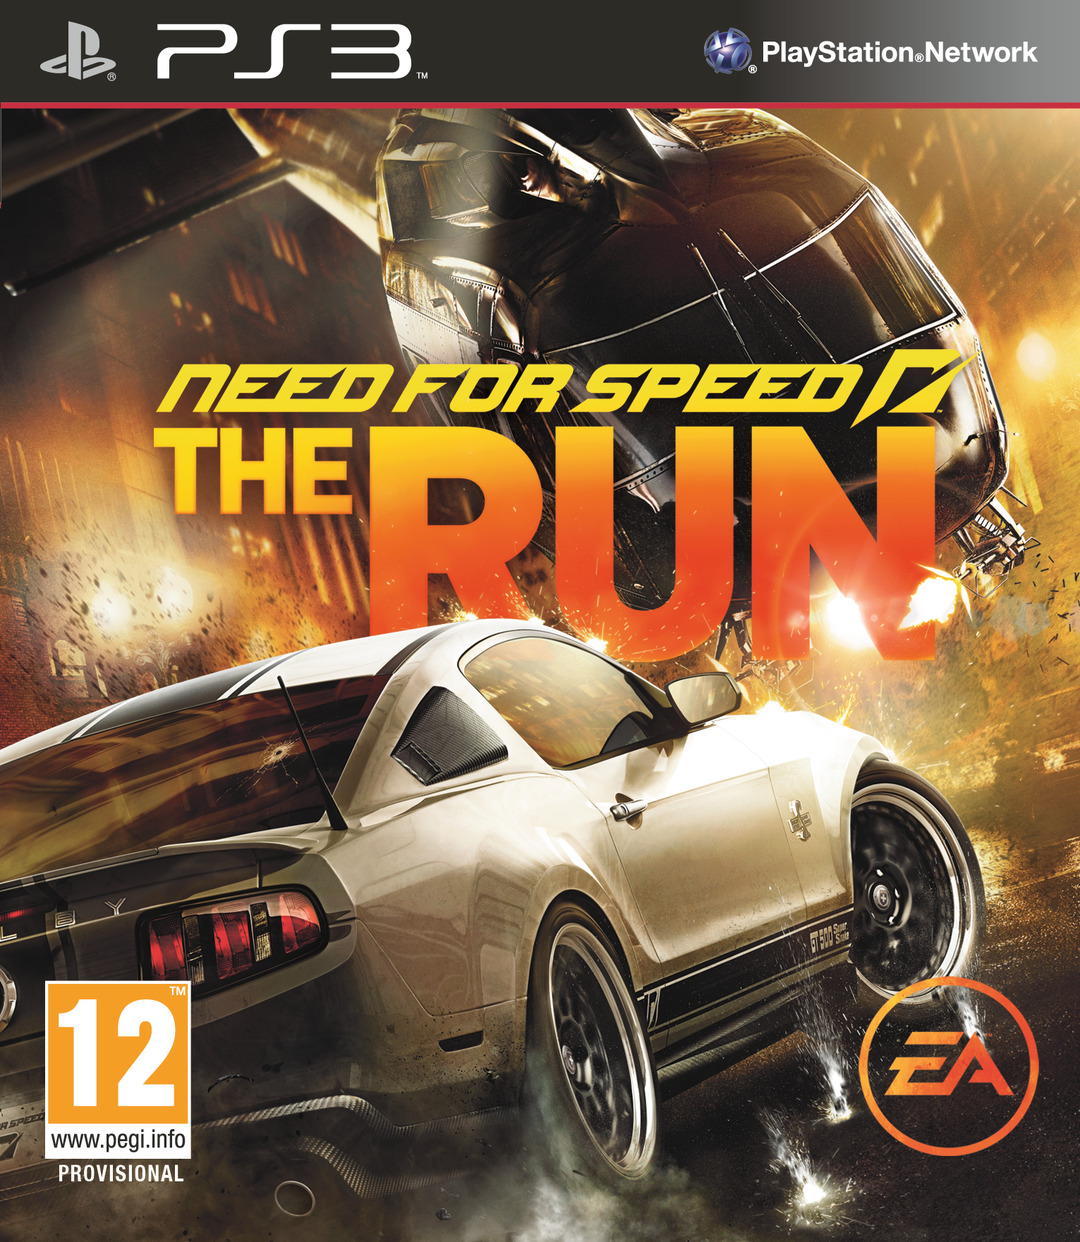 Need for Speed : The Run PS3 (exclue) [FS] dvdrip Jaquette-need-for-speed-the-run-playstation-3-ps3-cover-avant-g-1304085628